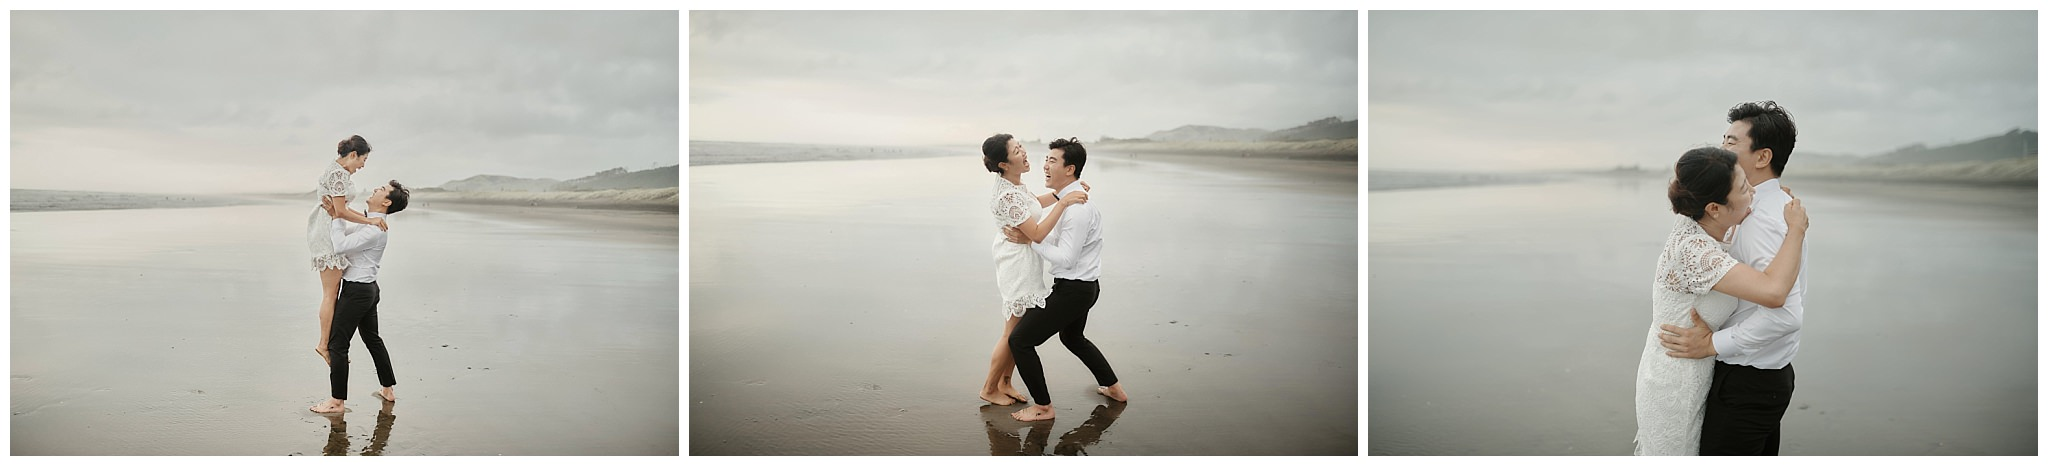 Auckland New Zealand Prewedding Photographer_0059.jpg